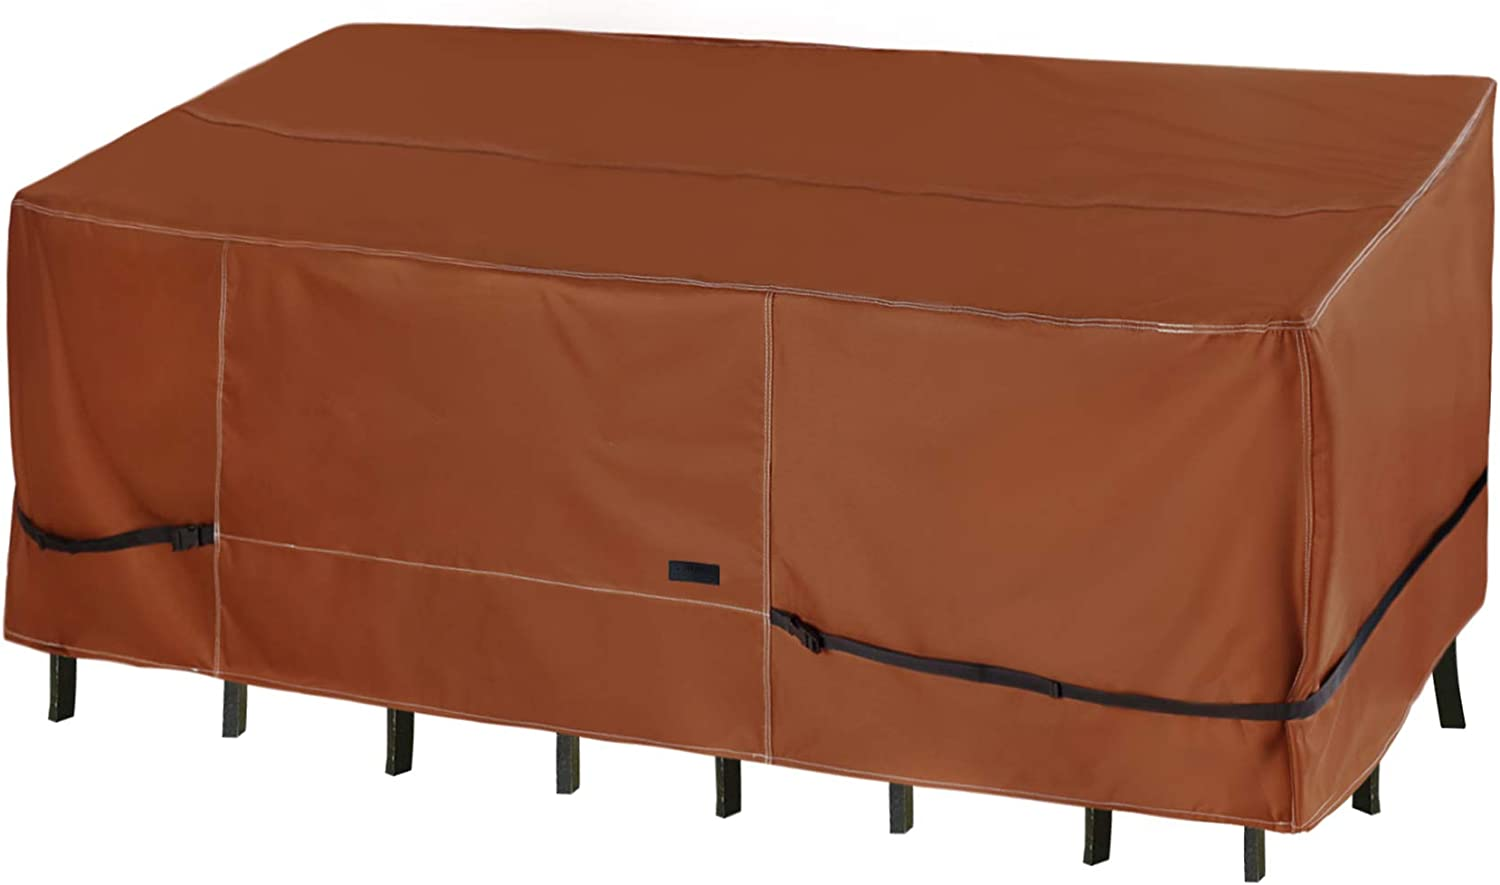 NettyPro Waterproof Patio Table Cover Rectangular, 600D Heavy Duty Outdoor Furniture Set Dining Rectangle Table Chairs Cover 105 x 75 Inches, Brown